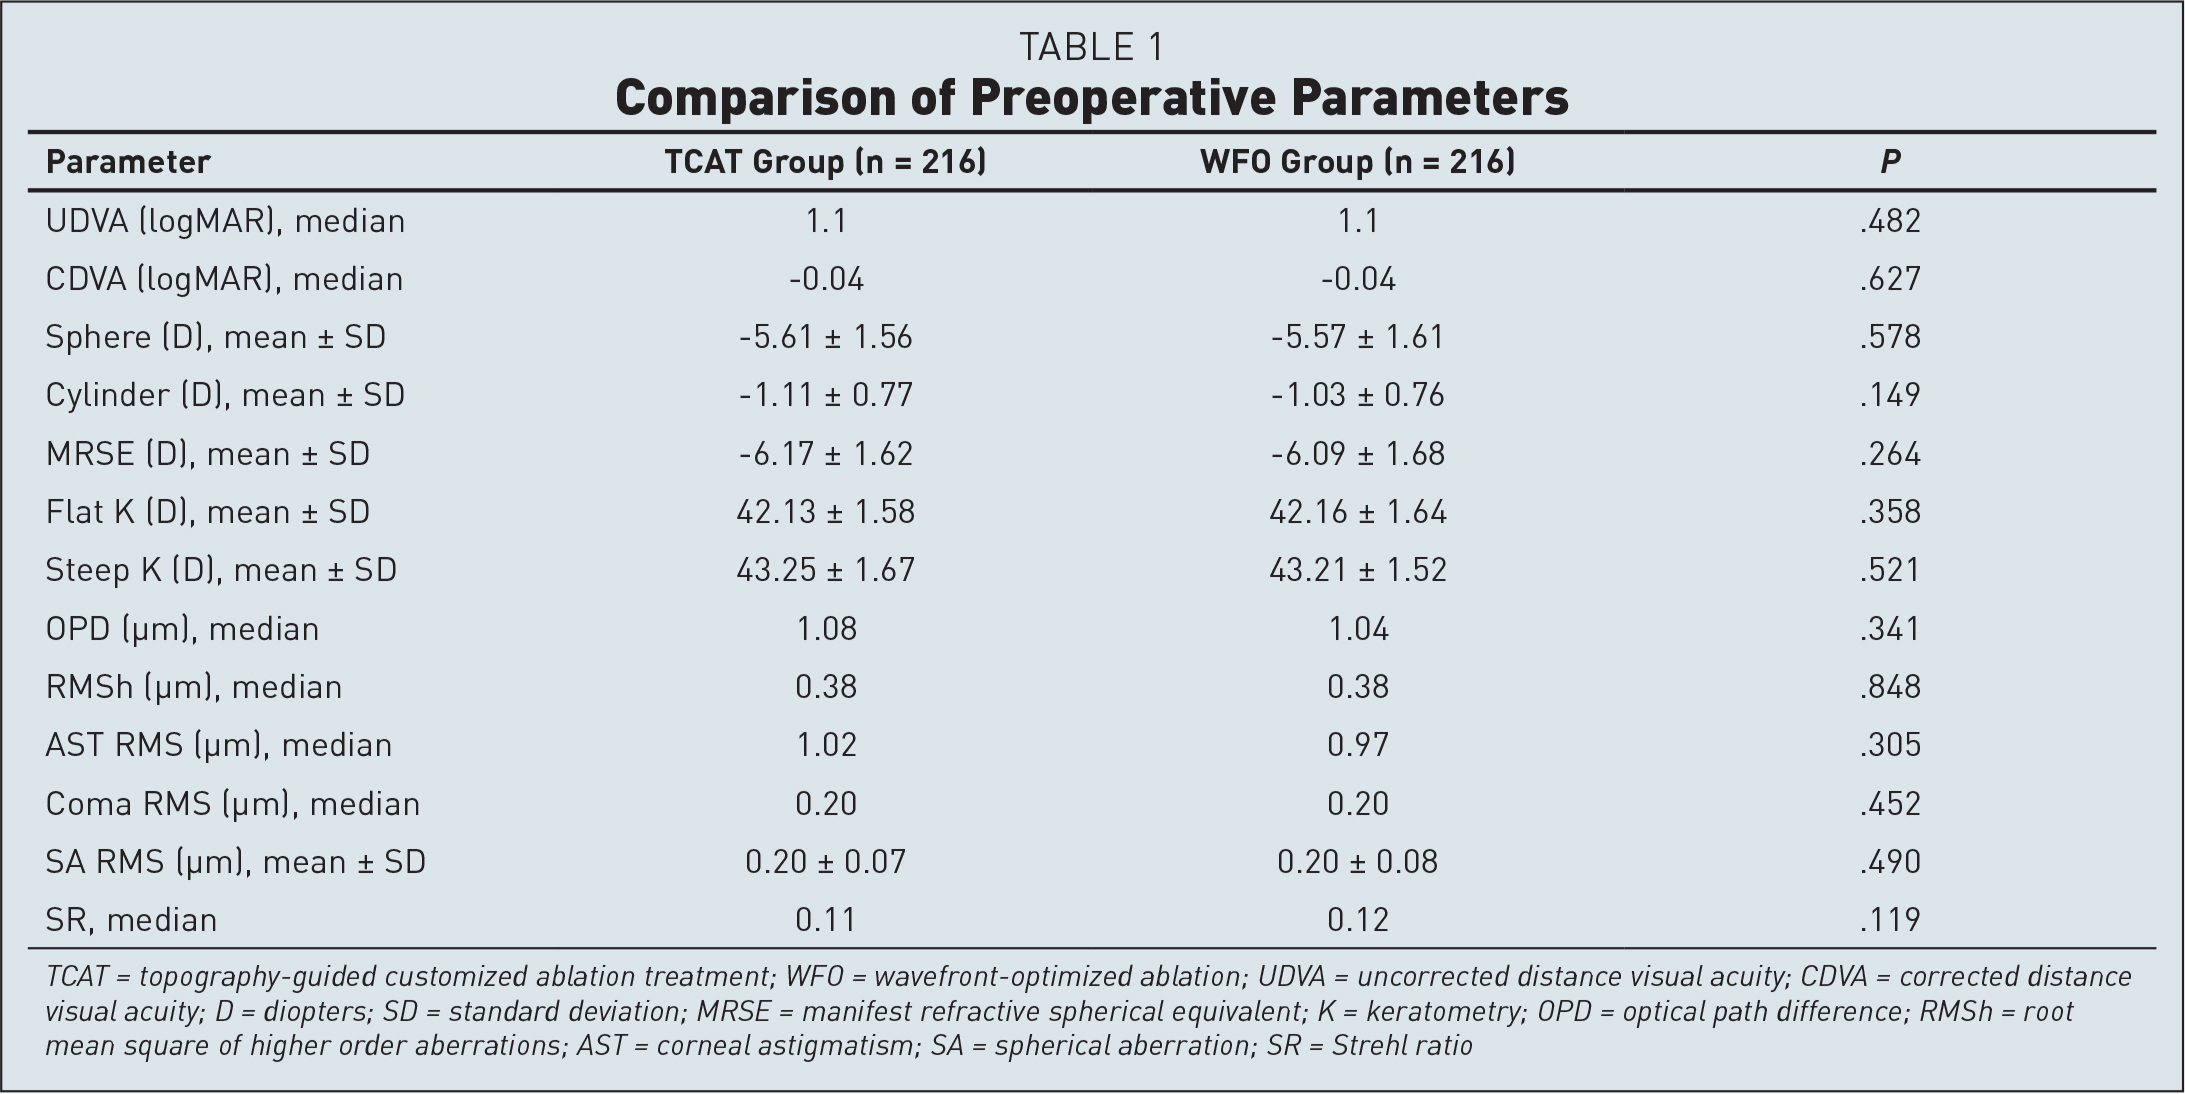 Comparison of Preoperative Parameters